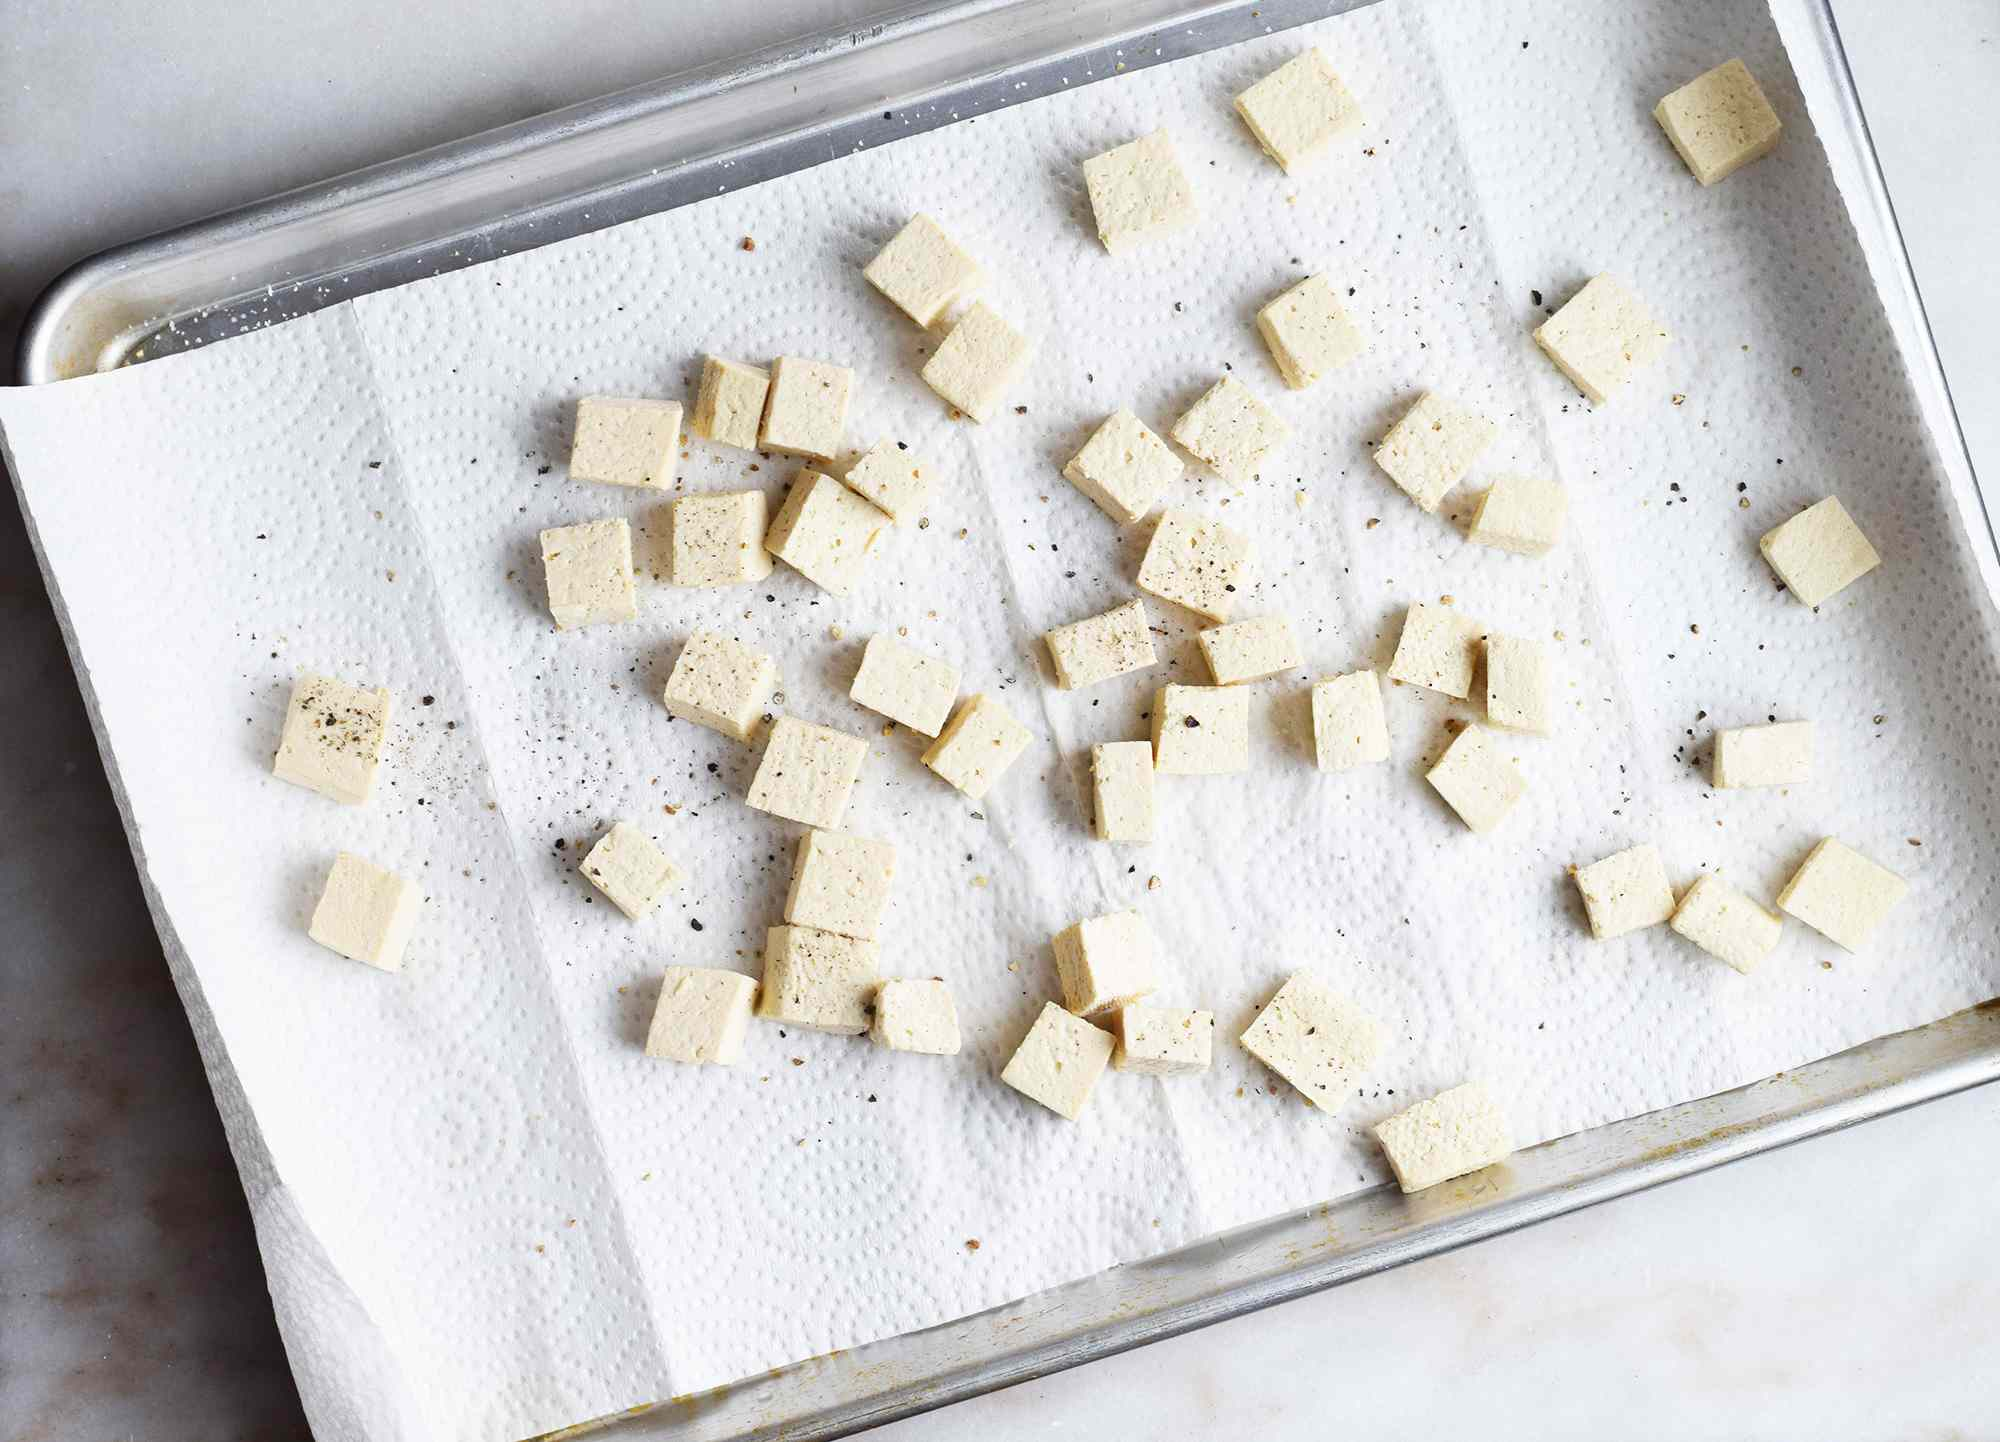 tofu on paper towels sprinkled with salt and pepper